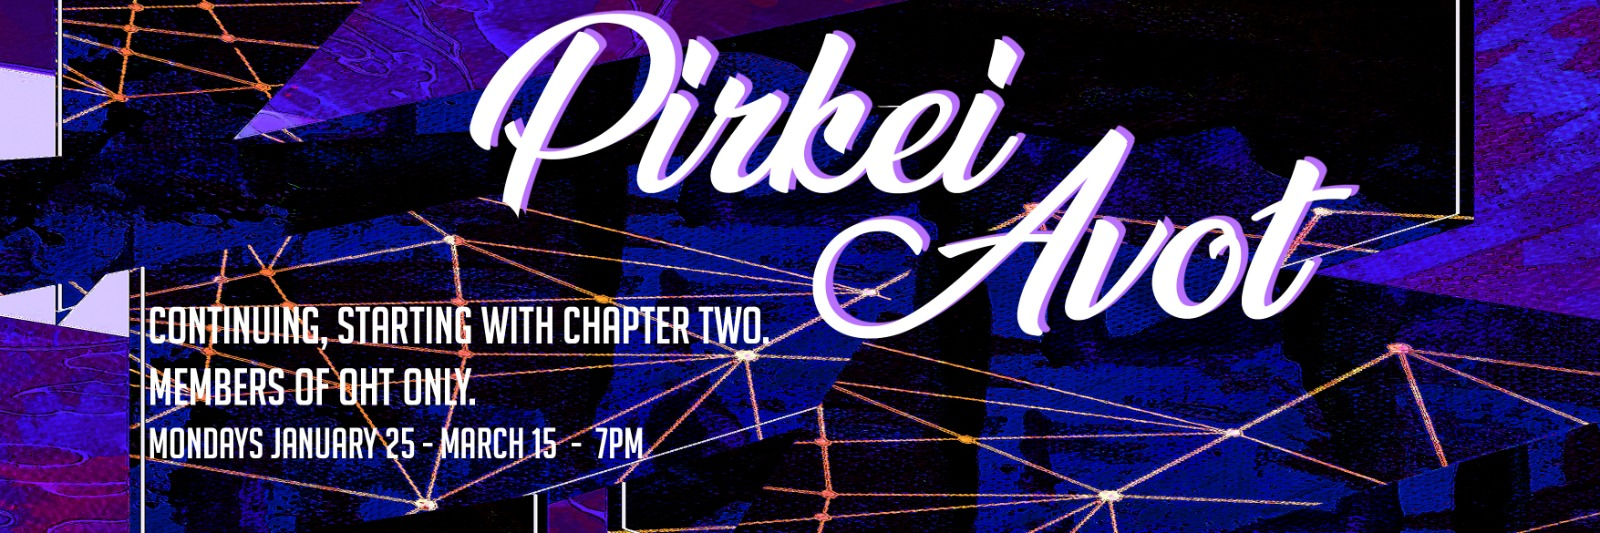 Banner Image for Pirkei Avot, continued